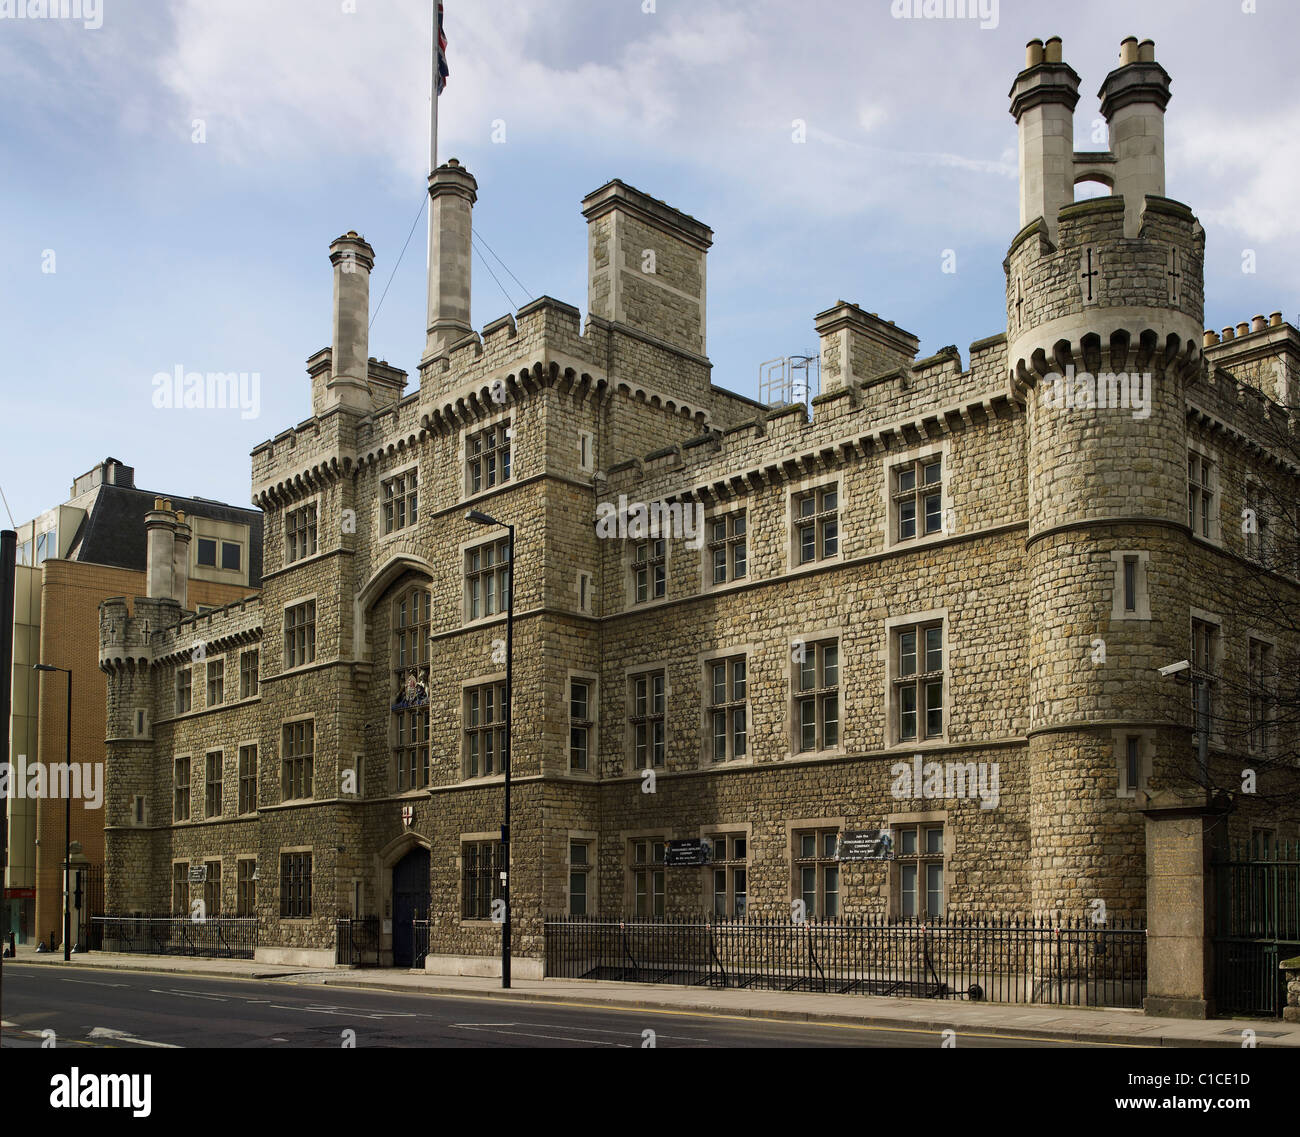 Finsbury Barracks, City Road, London, Royal London Militia HQ., by the architect Joseph Jennings. Completed in 1857 - Stock Image